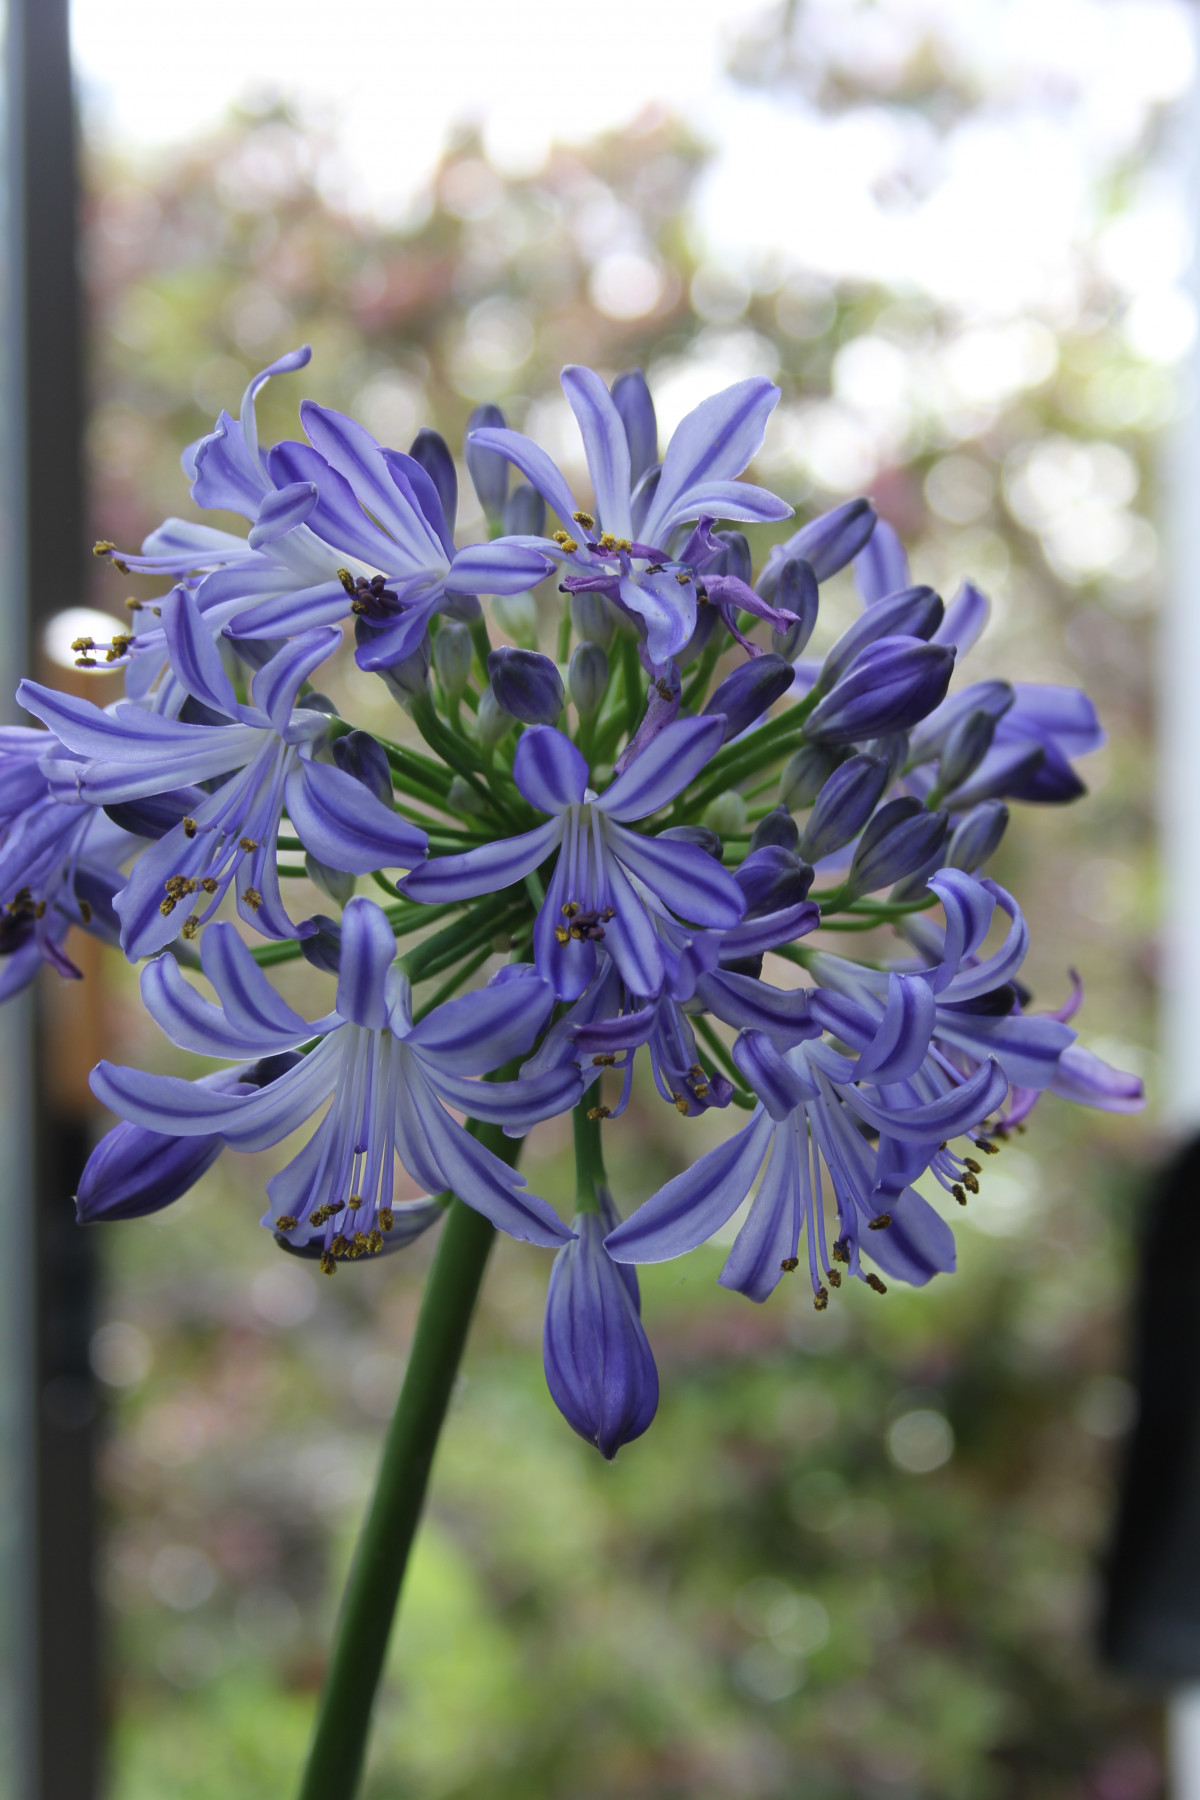 Growing Agapanthus By Roger Marshall